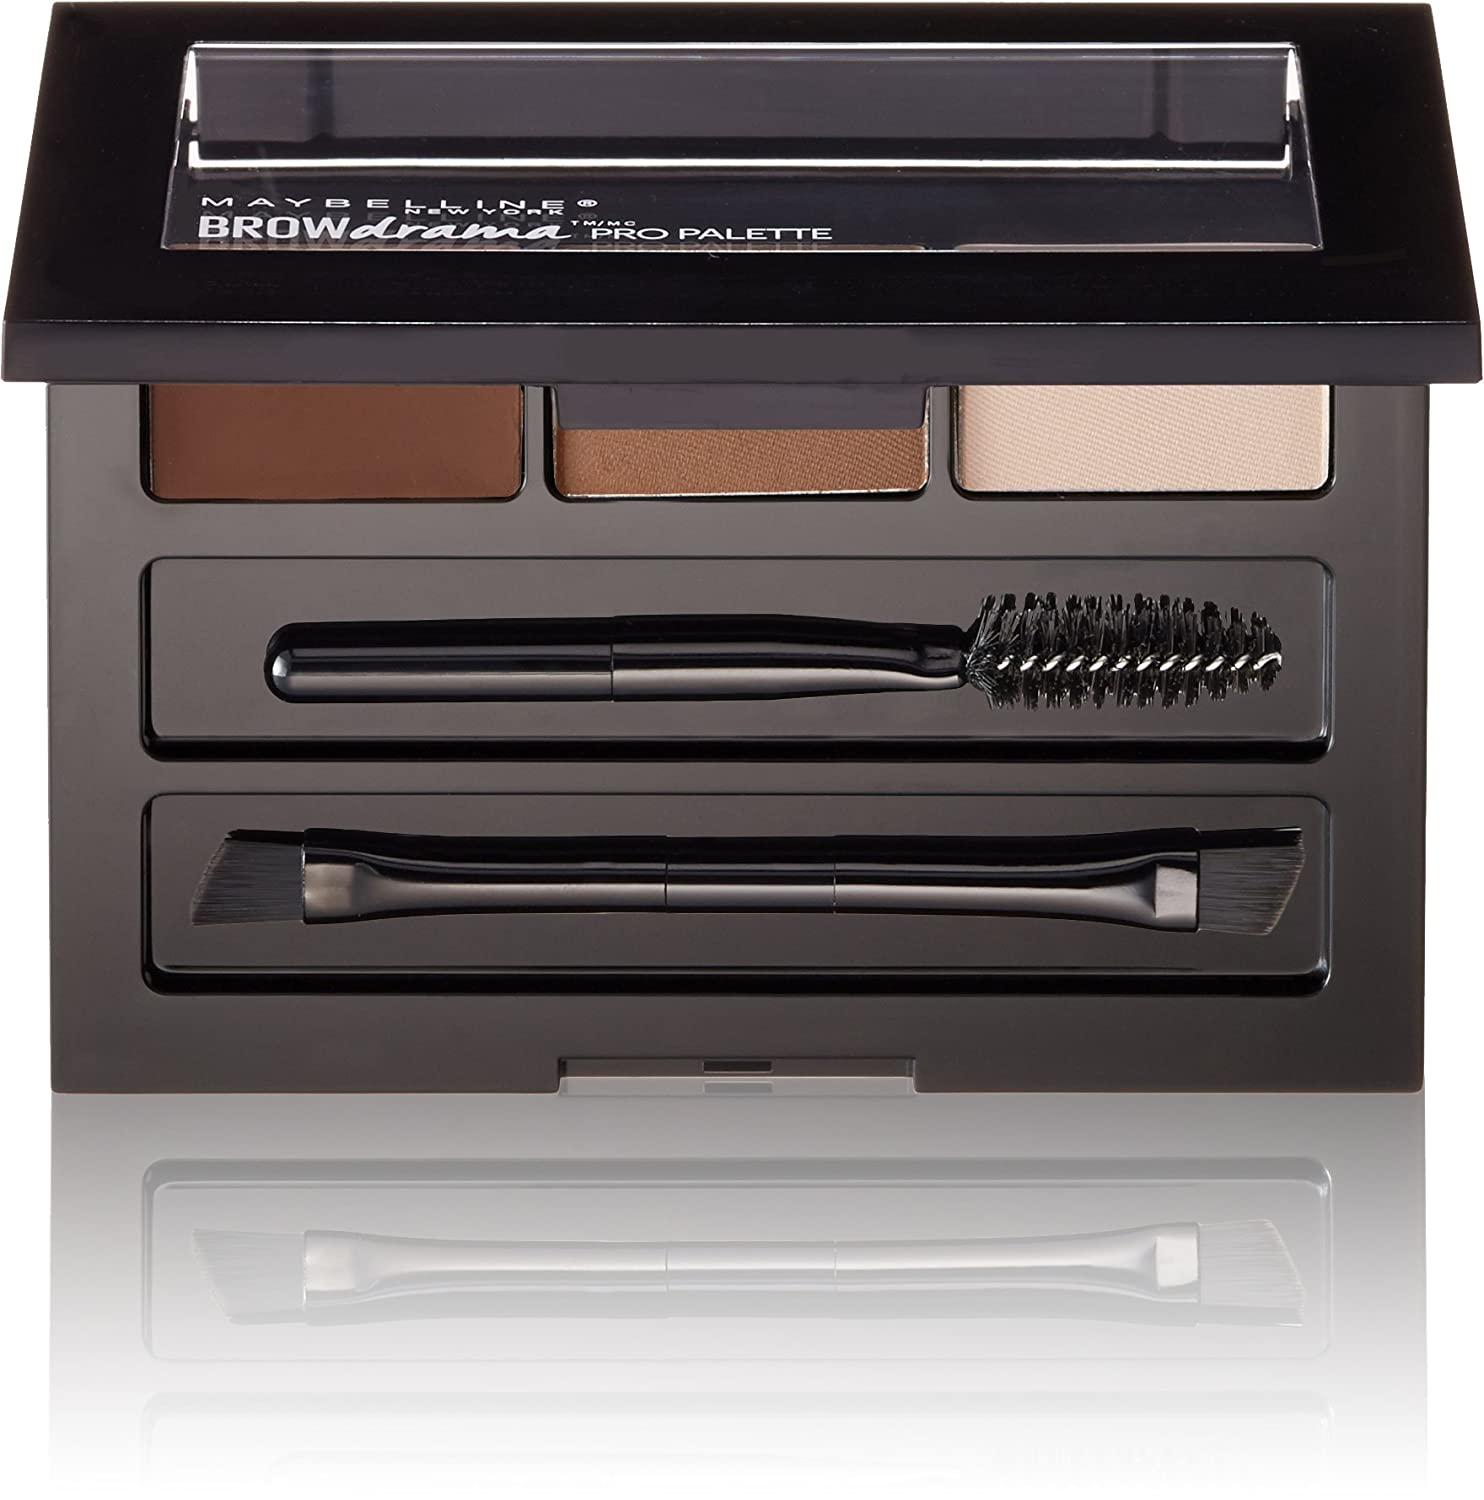 Maybelline New York Brow Drama Pro Eye Makeup Palette, Soft Brown, 0.1 Ounce MABROWPL2